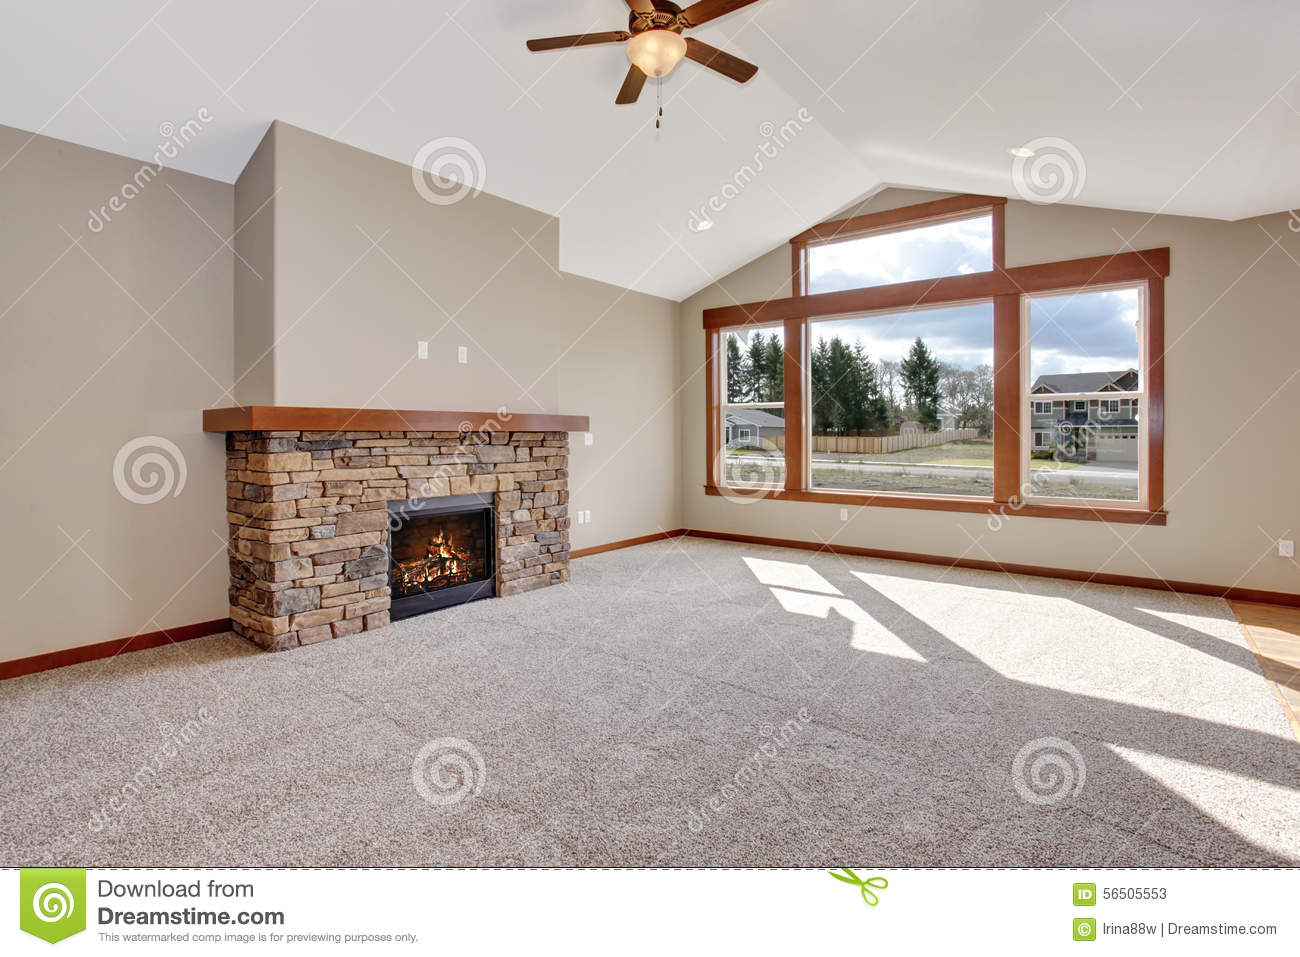 Delightful Nice Unfurnished Living Room With Carpet.